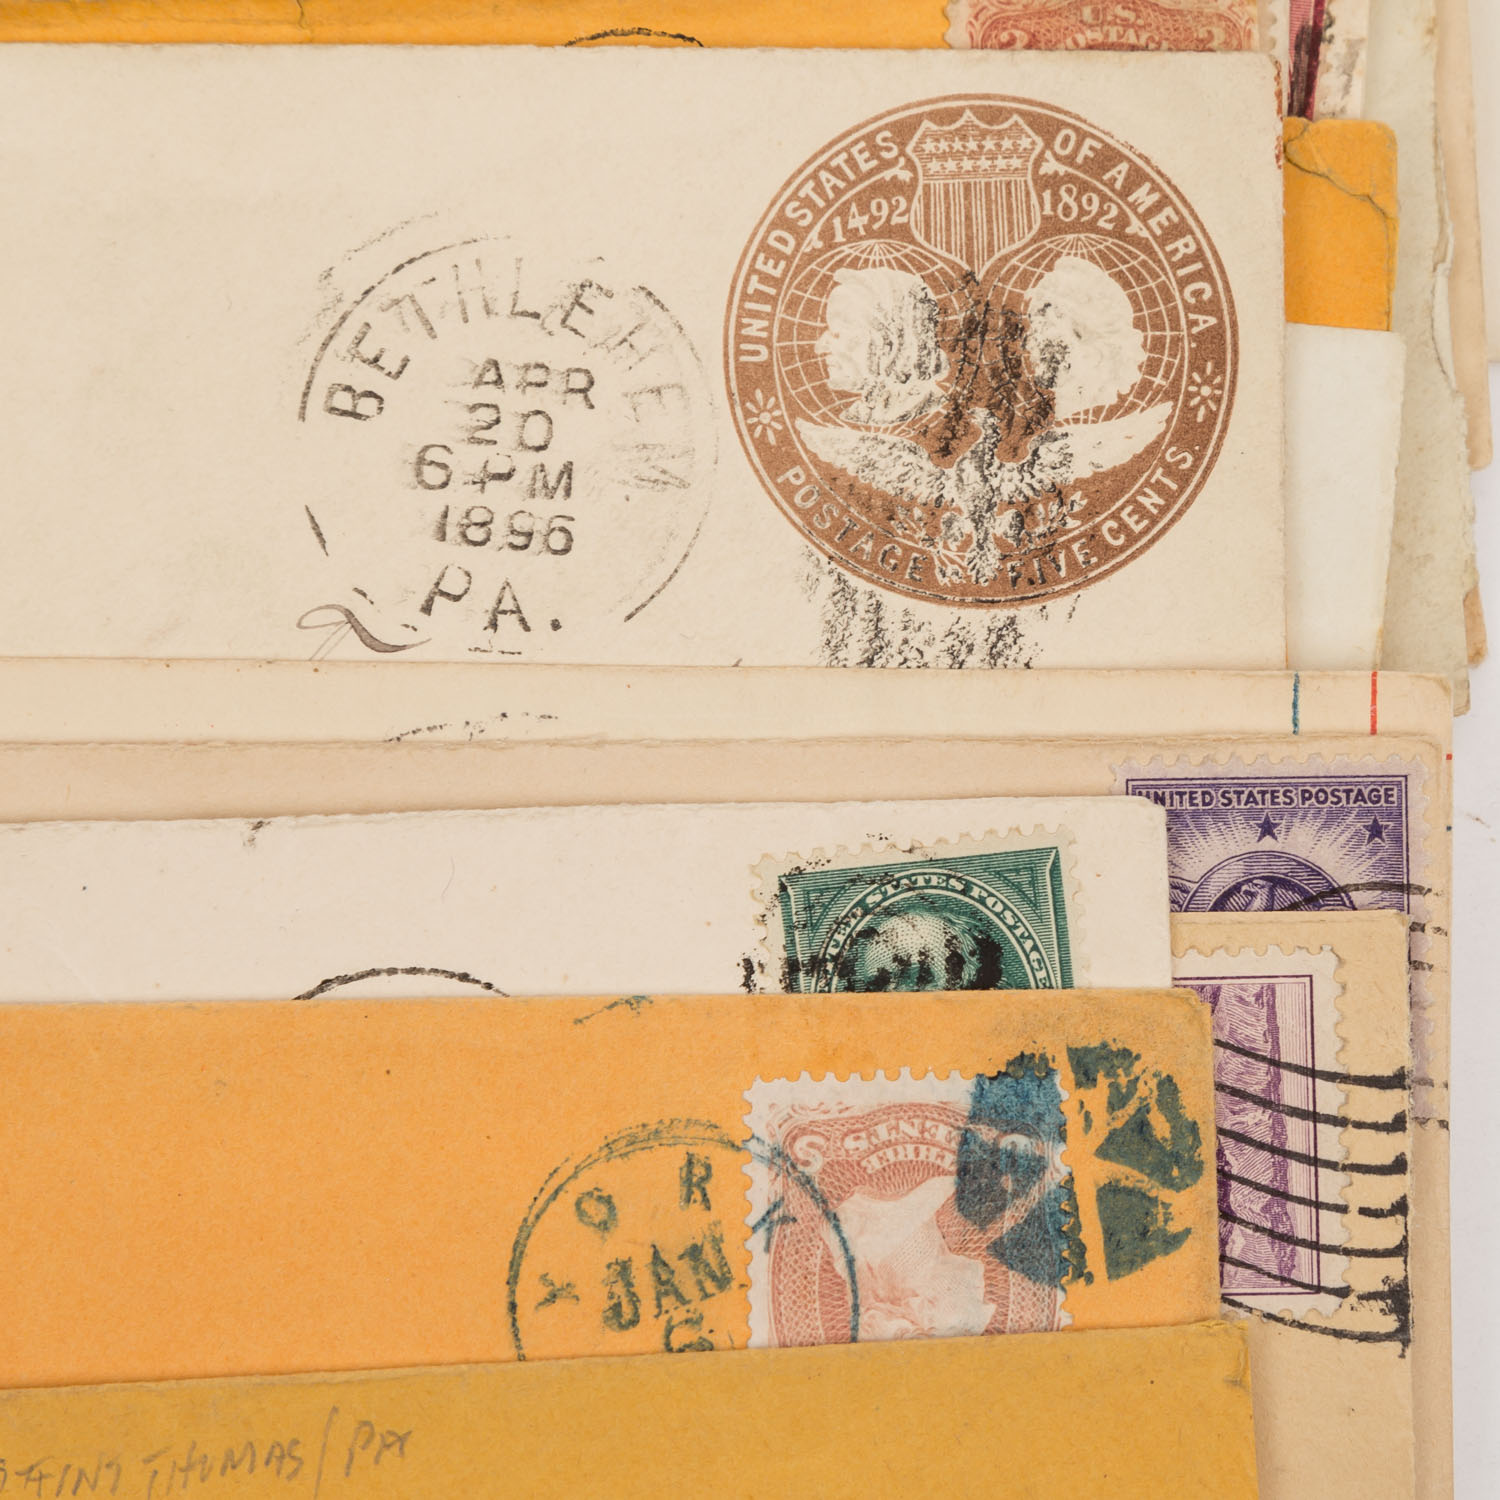 Lot 1407 - USA - ex 1870/2000, 85 covers about,teils sehr dekorativ.USA - ex 1870/2000, 85 covers about, partly